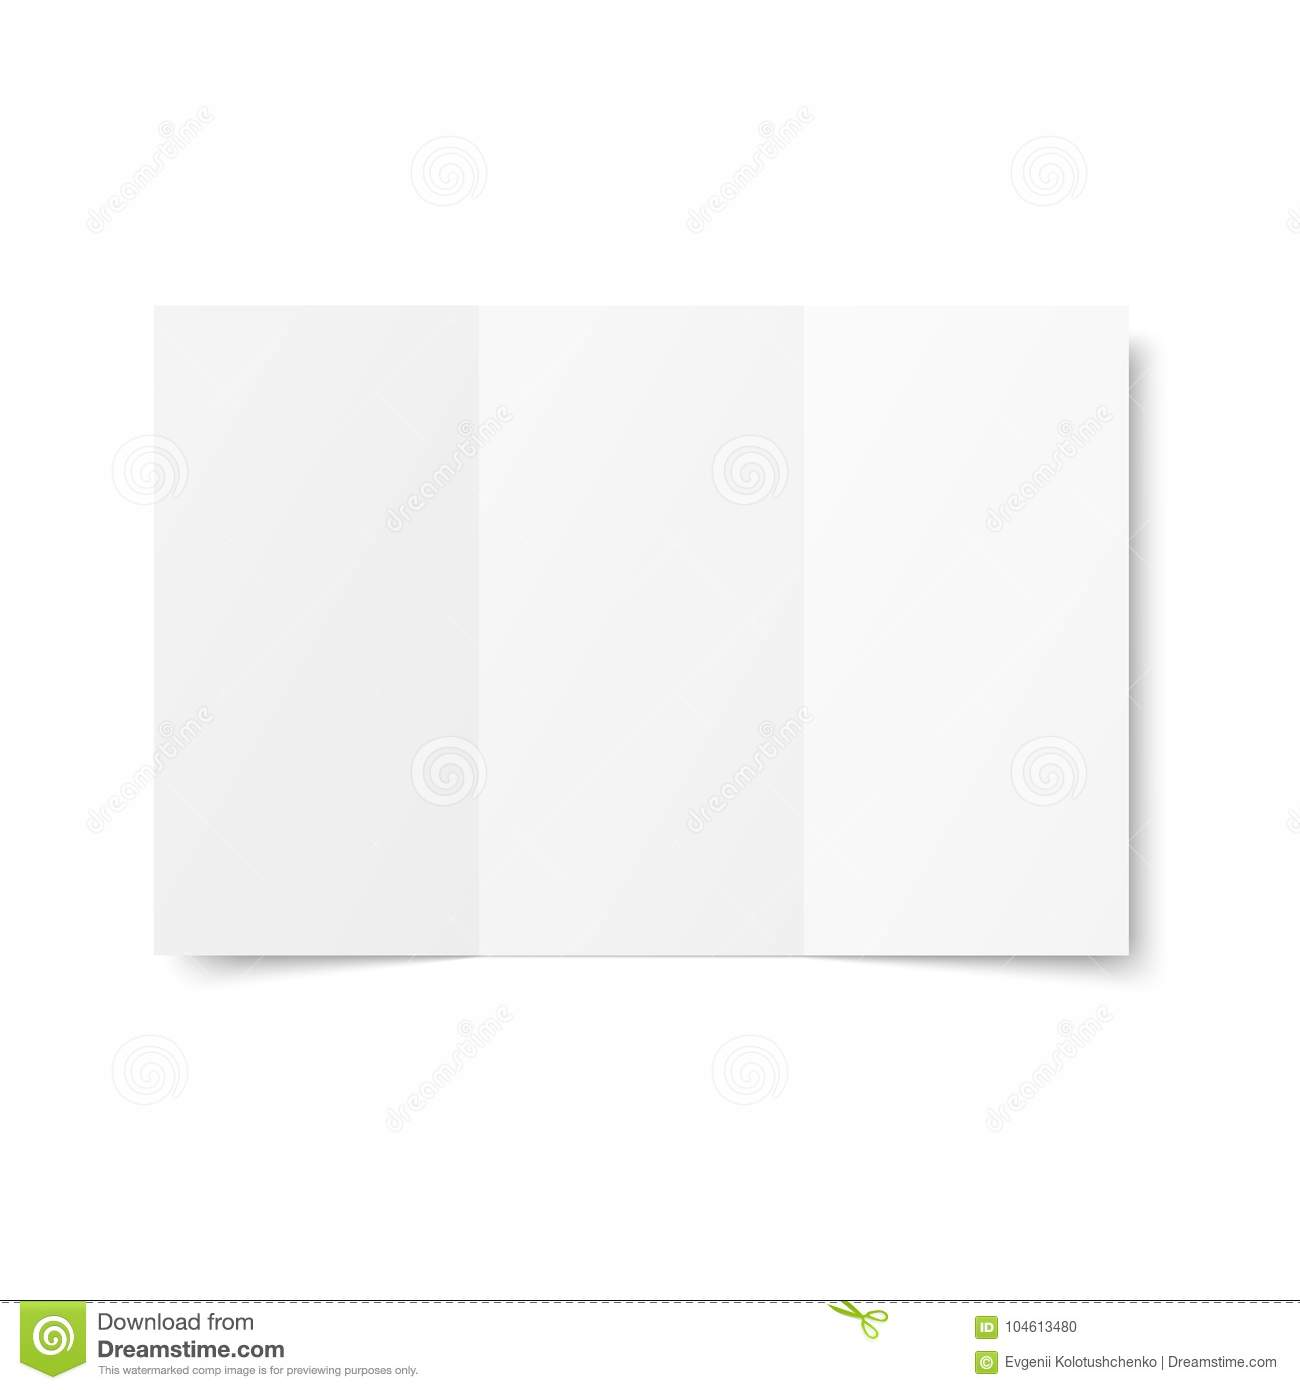 vector blank white trifold booklet opened on white background front side tri folded paper sheet in a4 mock up of empty cover or flyer isolated